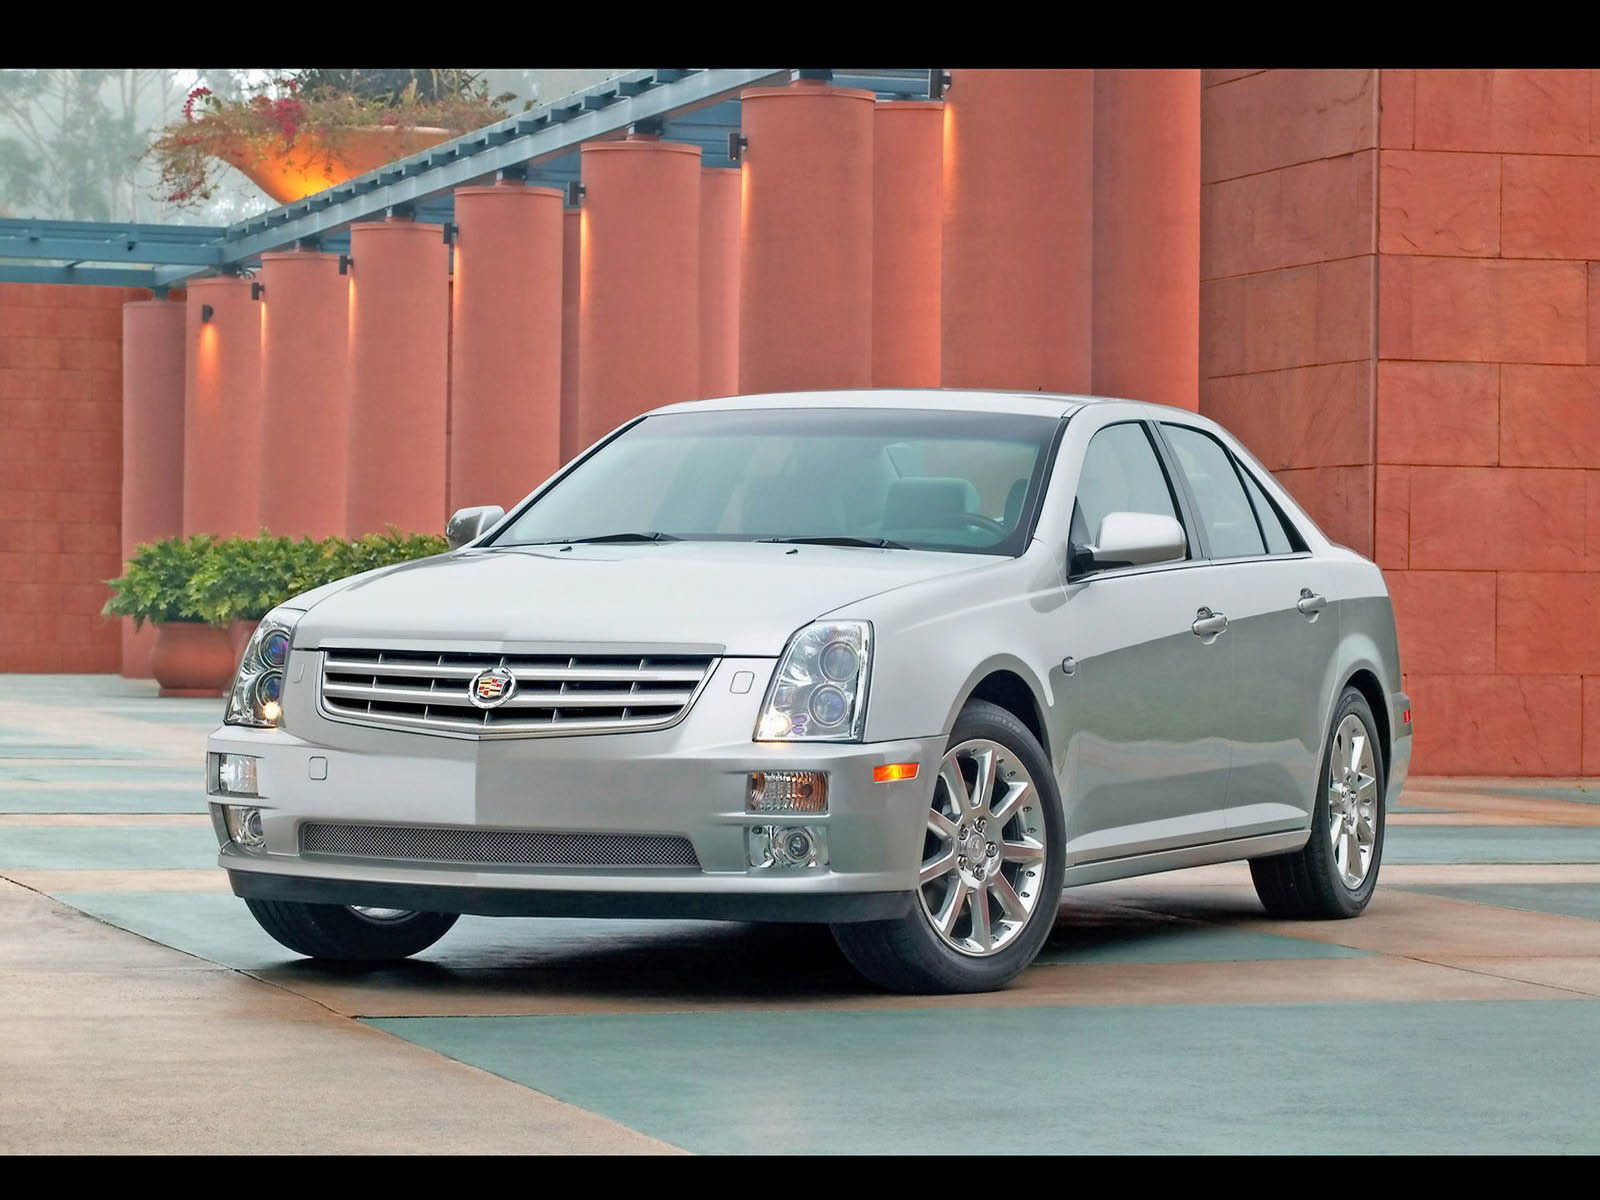 2006 cadillac sts picture 2533 car review top speed. Black Bedroom Furniture Sets. Home Design Ideas